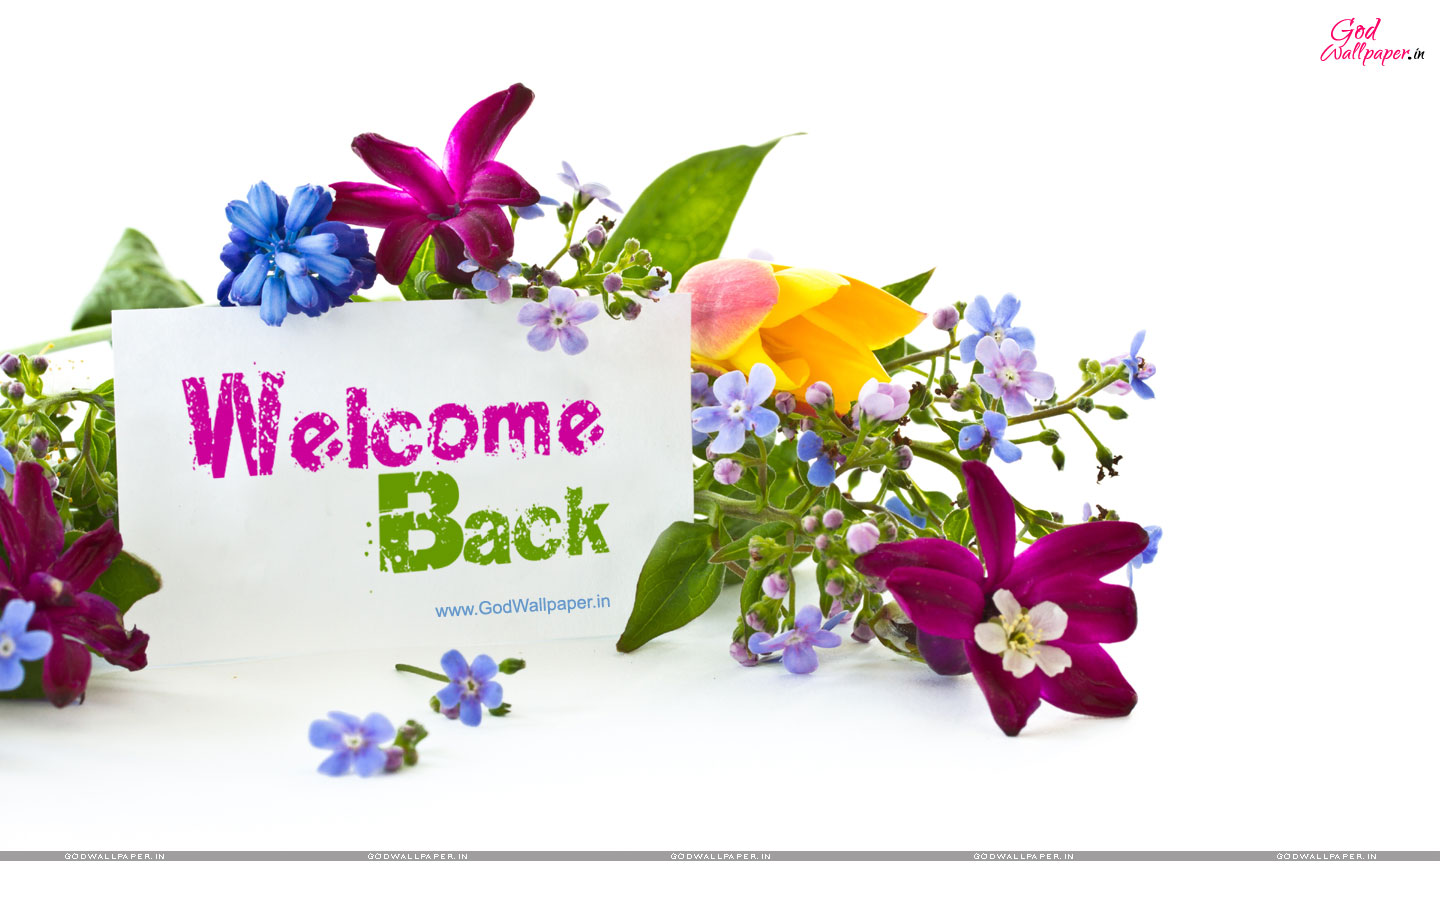 Welcome-Back-Wallpaper.jpg